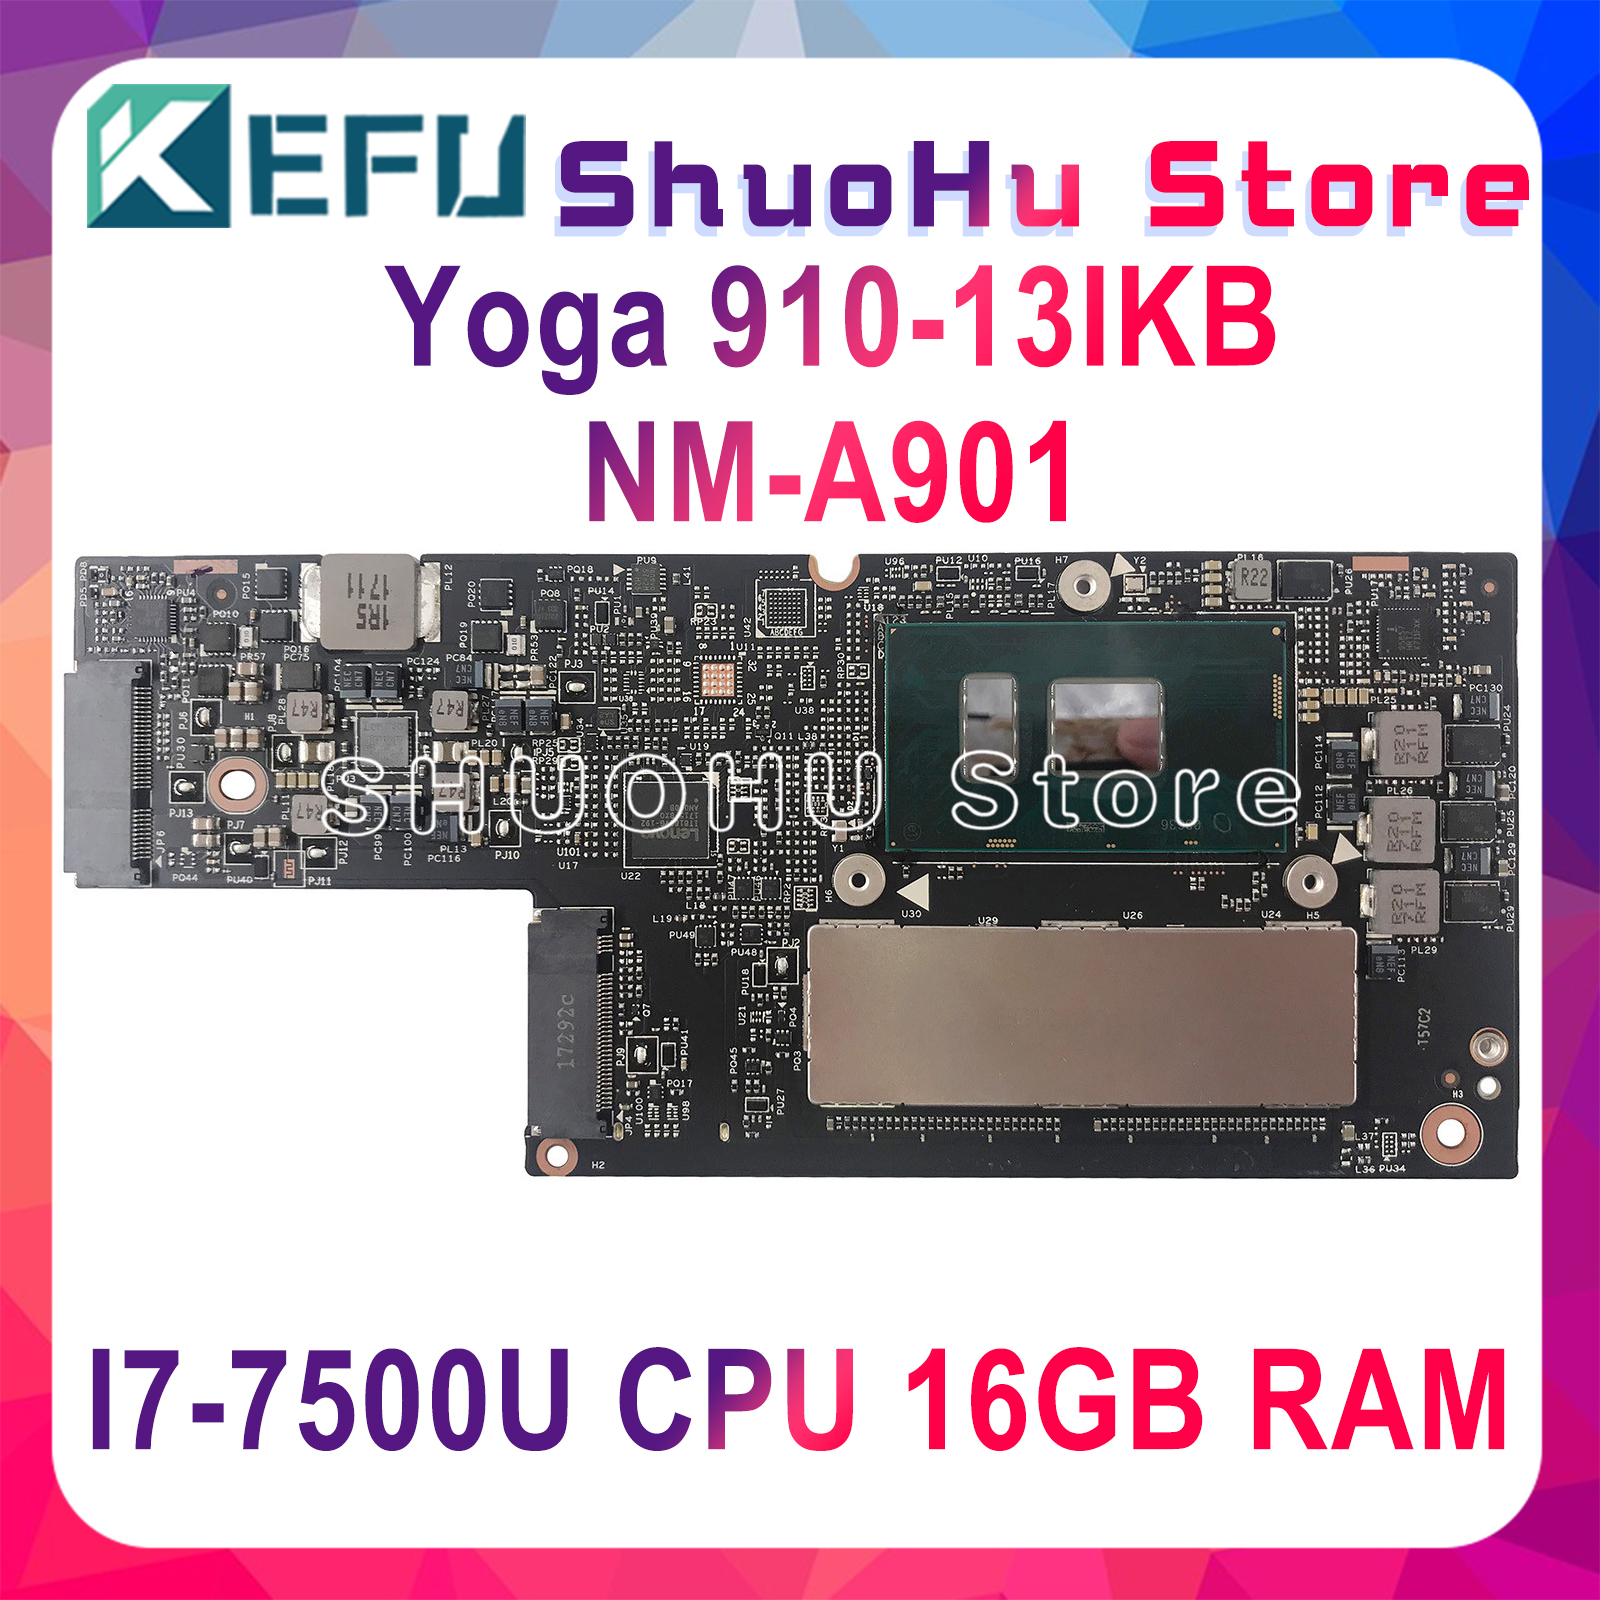 KEFU CYG50 NM-A901 motherboard for Lenovo YOGA 910-13IKB YOGA 910 Laptop Motherboard I7-7500U CPU 16GB RAM original tested image